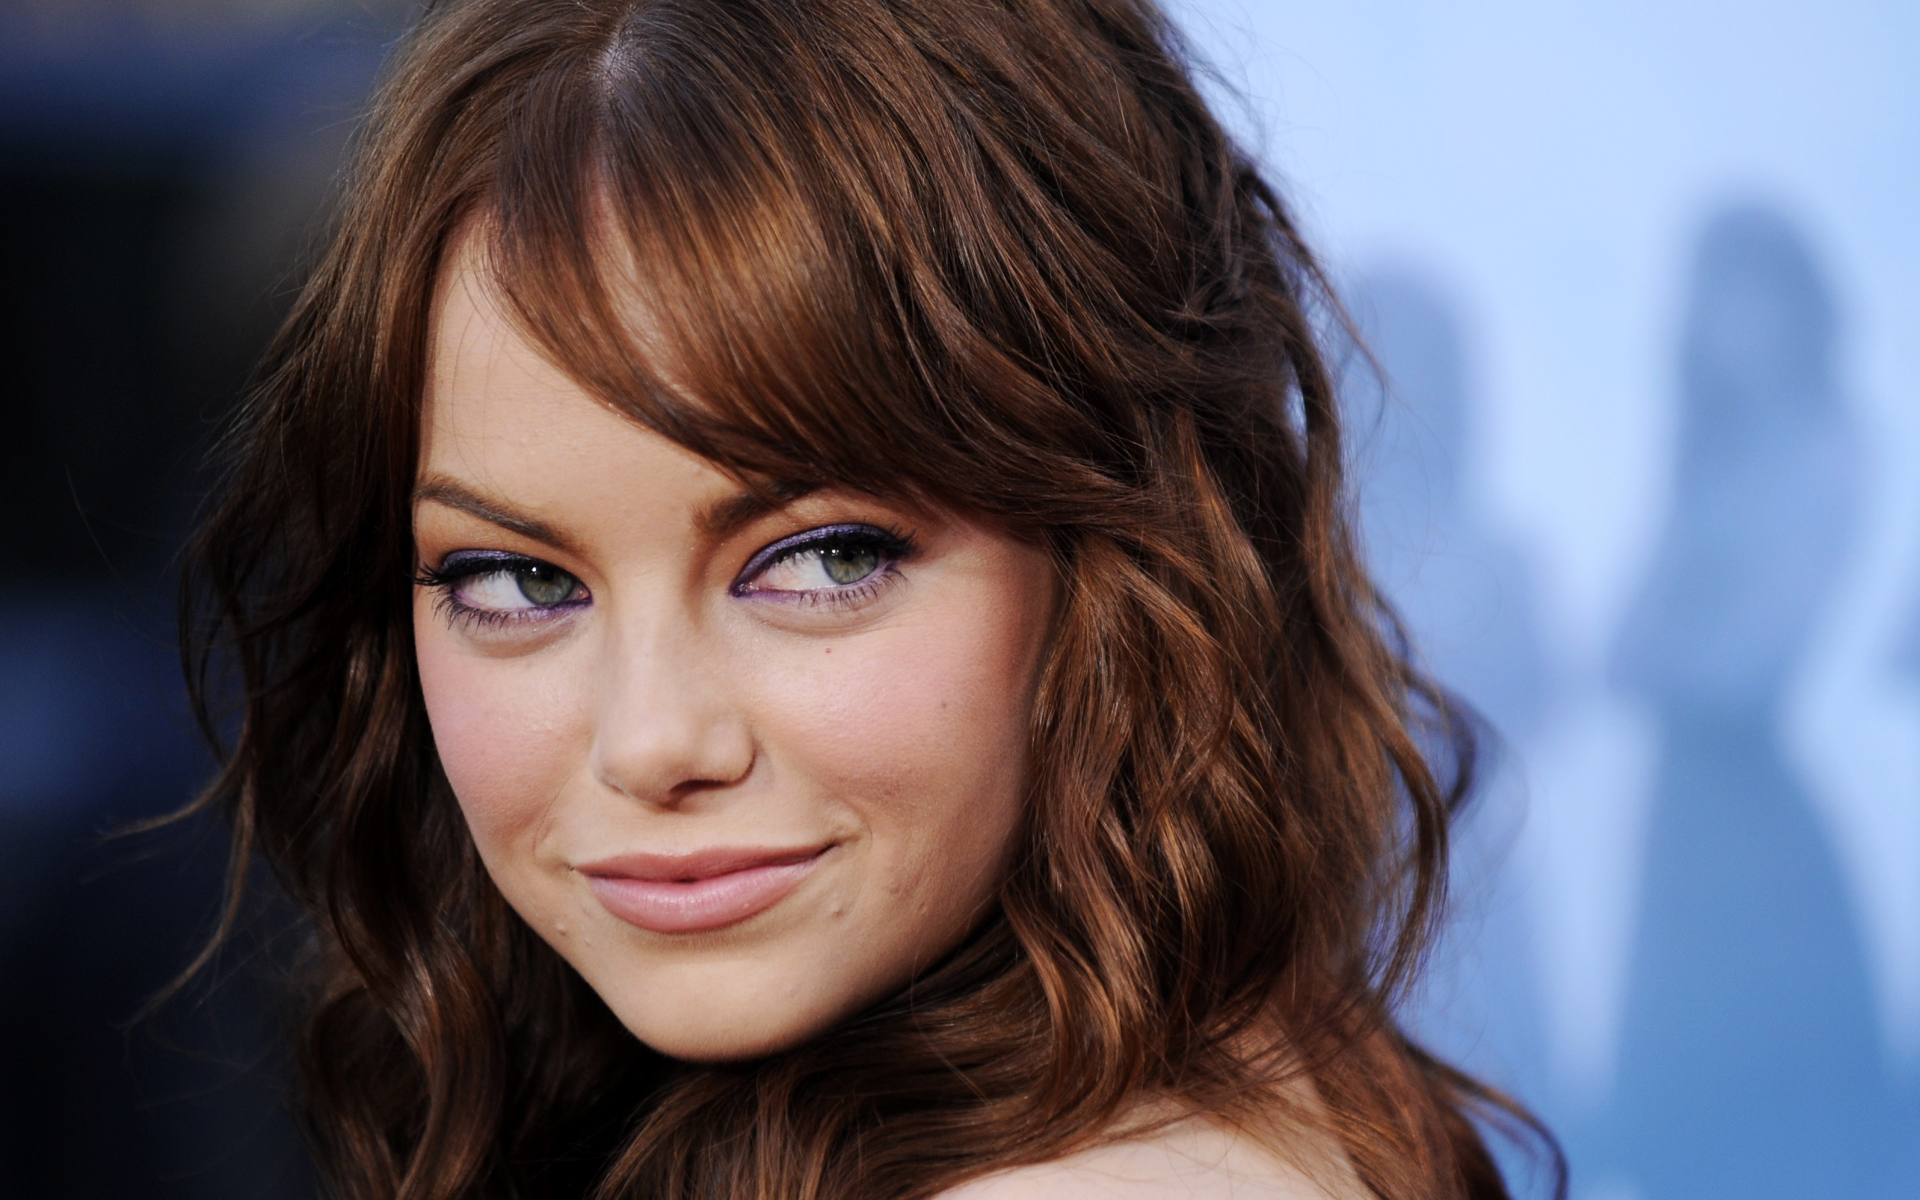 https://i0.wp.com/thefilmstage.com/wp-content/uploads/2011/07/emma_stone_1920_1200_may152009.jpg